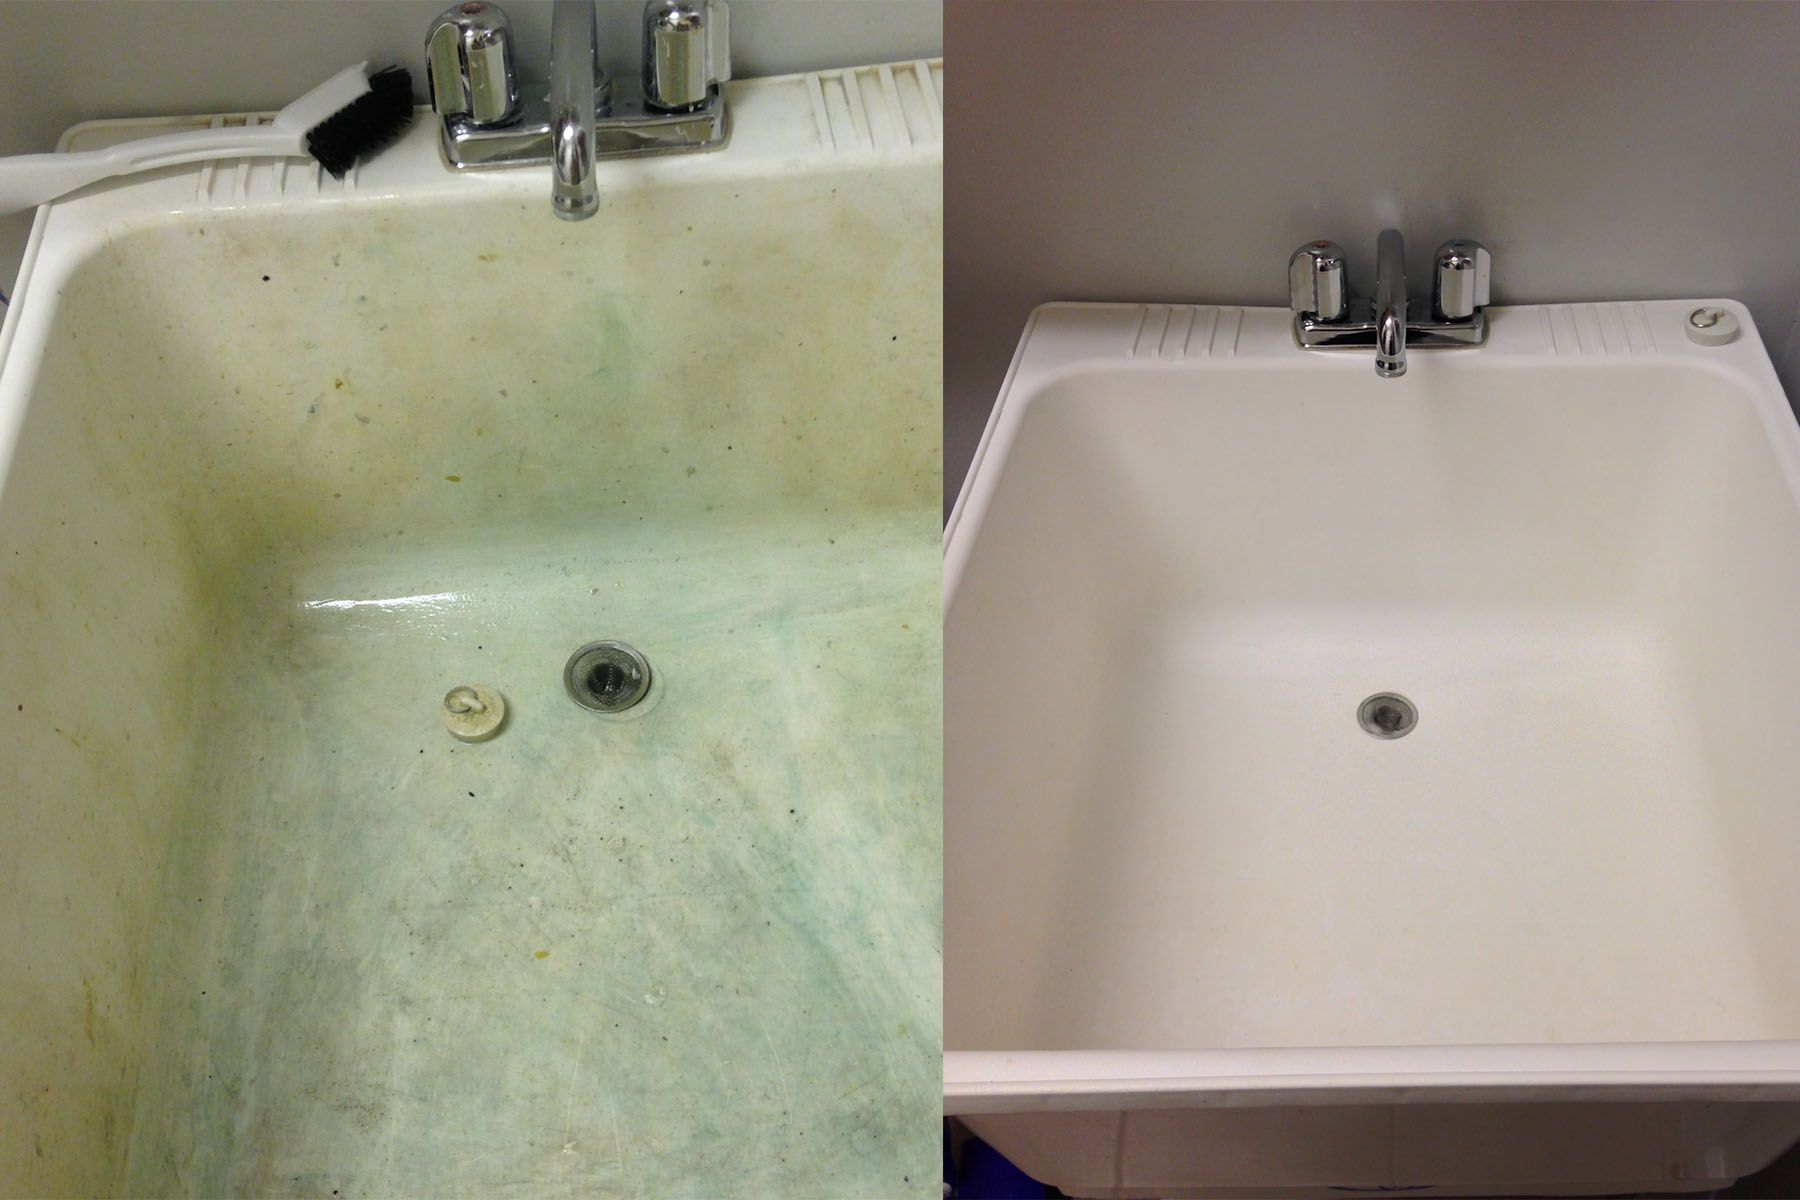 Cleaning Laundry Sink I Tried Everything To Get Sink Clean